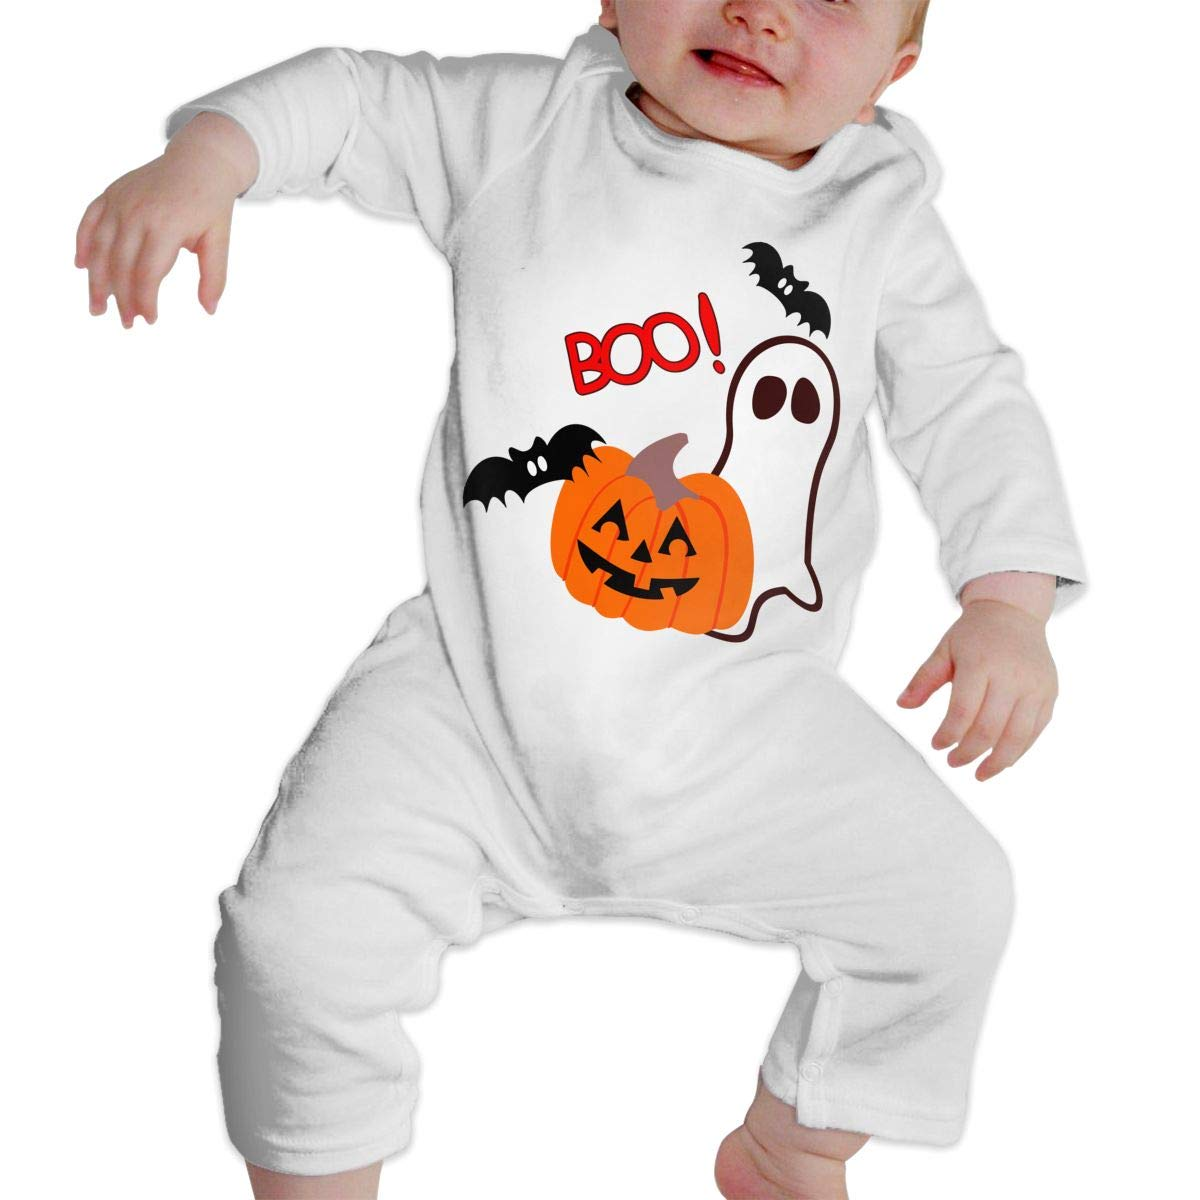 Mri-le1 Baby Girl Jumpsuit Boo Halloween Toddler Jumpsuit